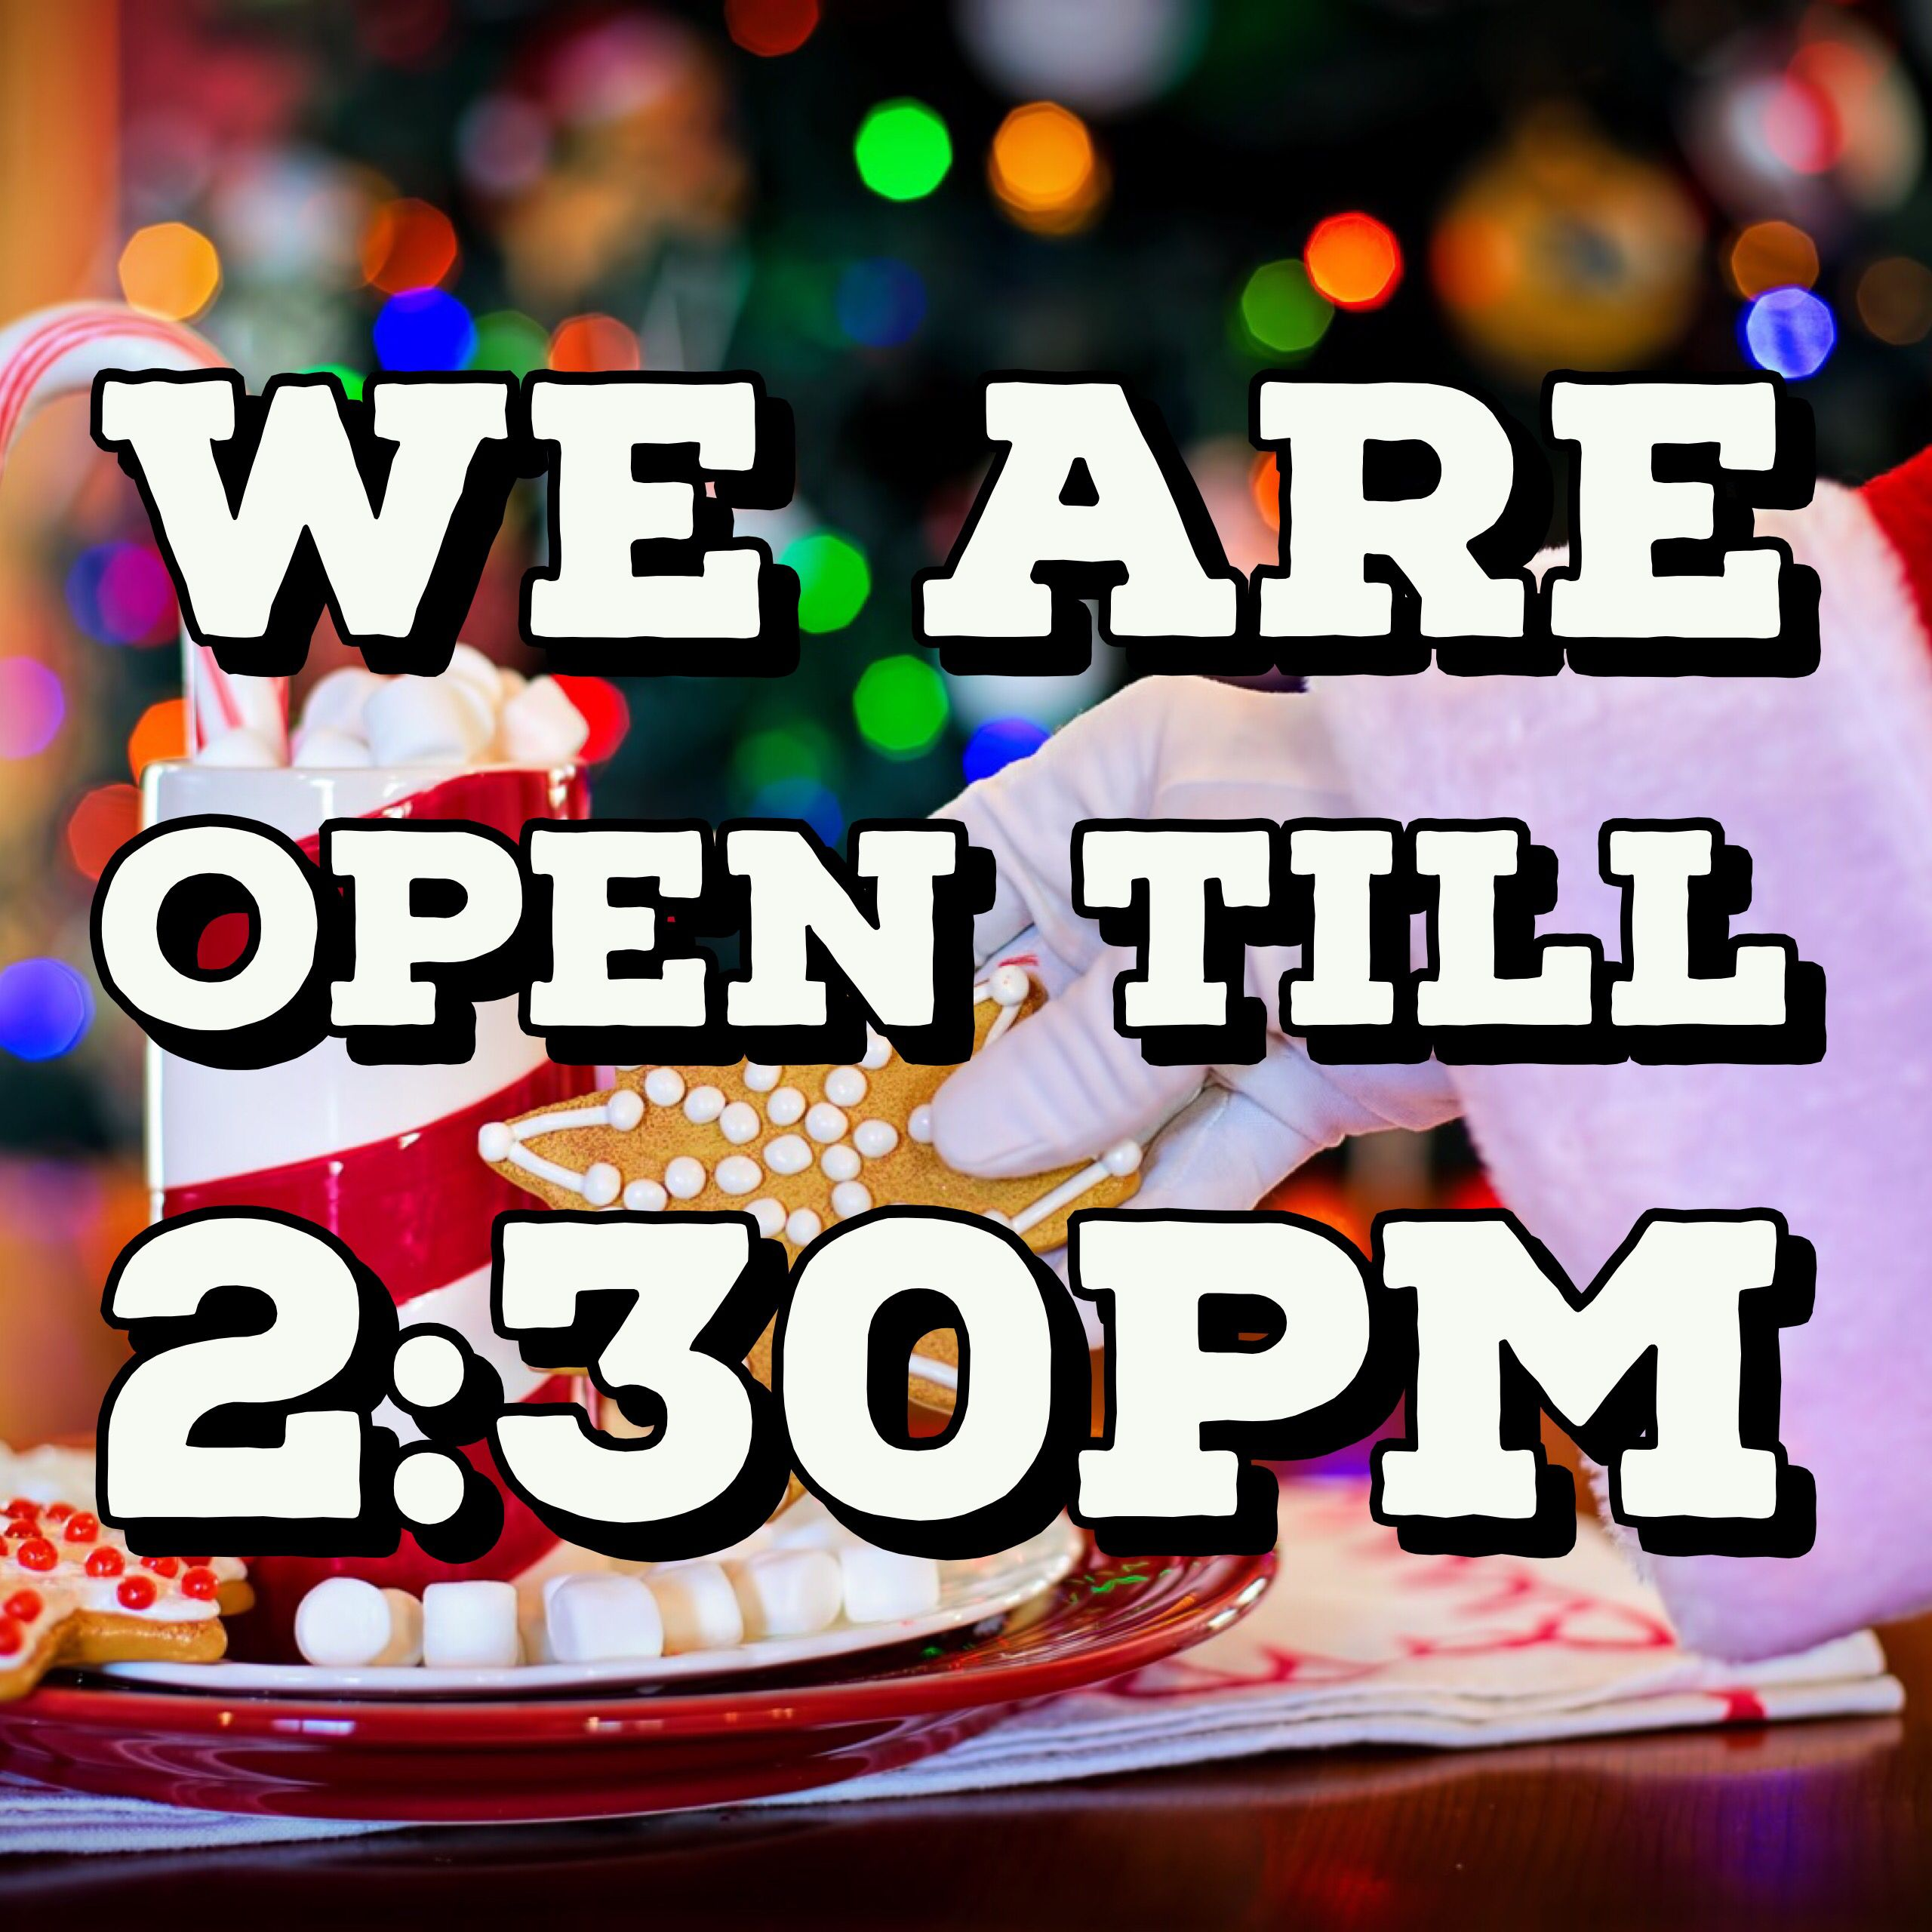 To help you finish up some last minute shopping, we are